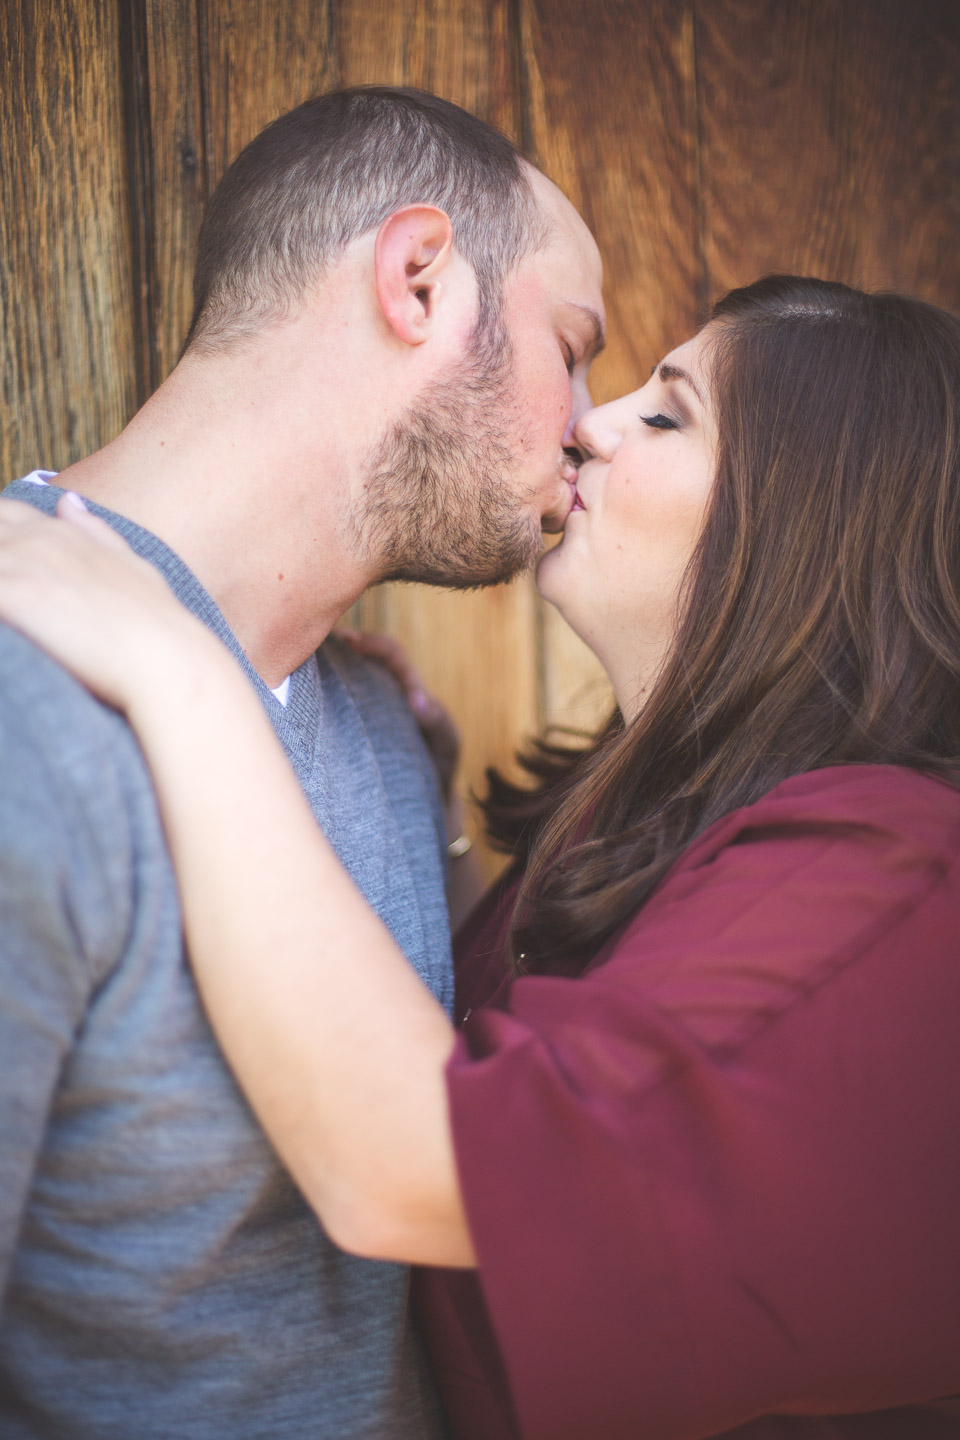 Engagement-Northville-Mill-Race-Village-David-Danielle-Kiss-Wooden-Door